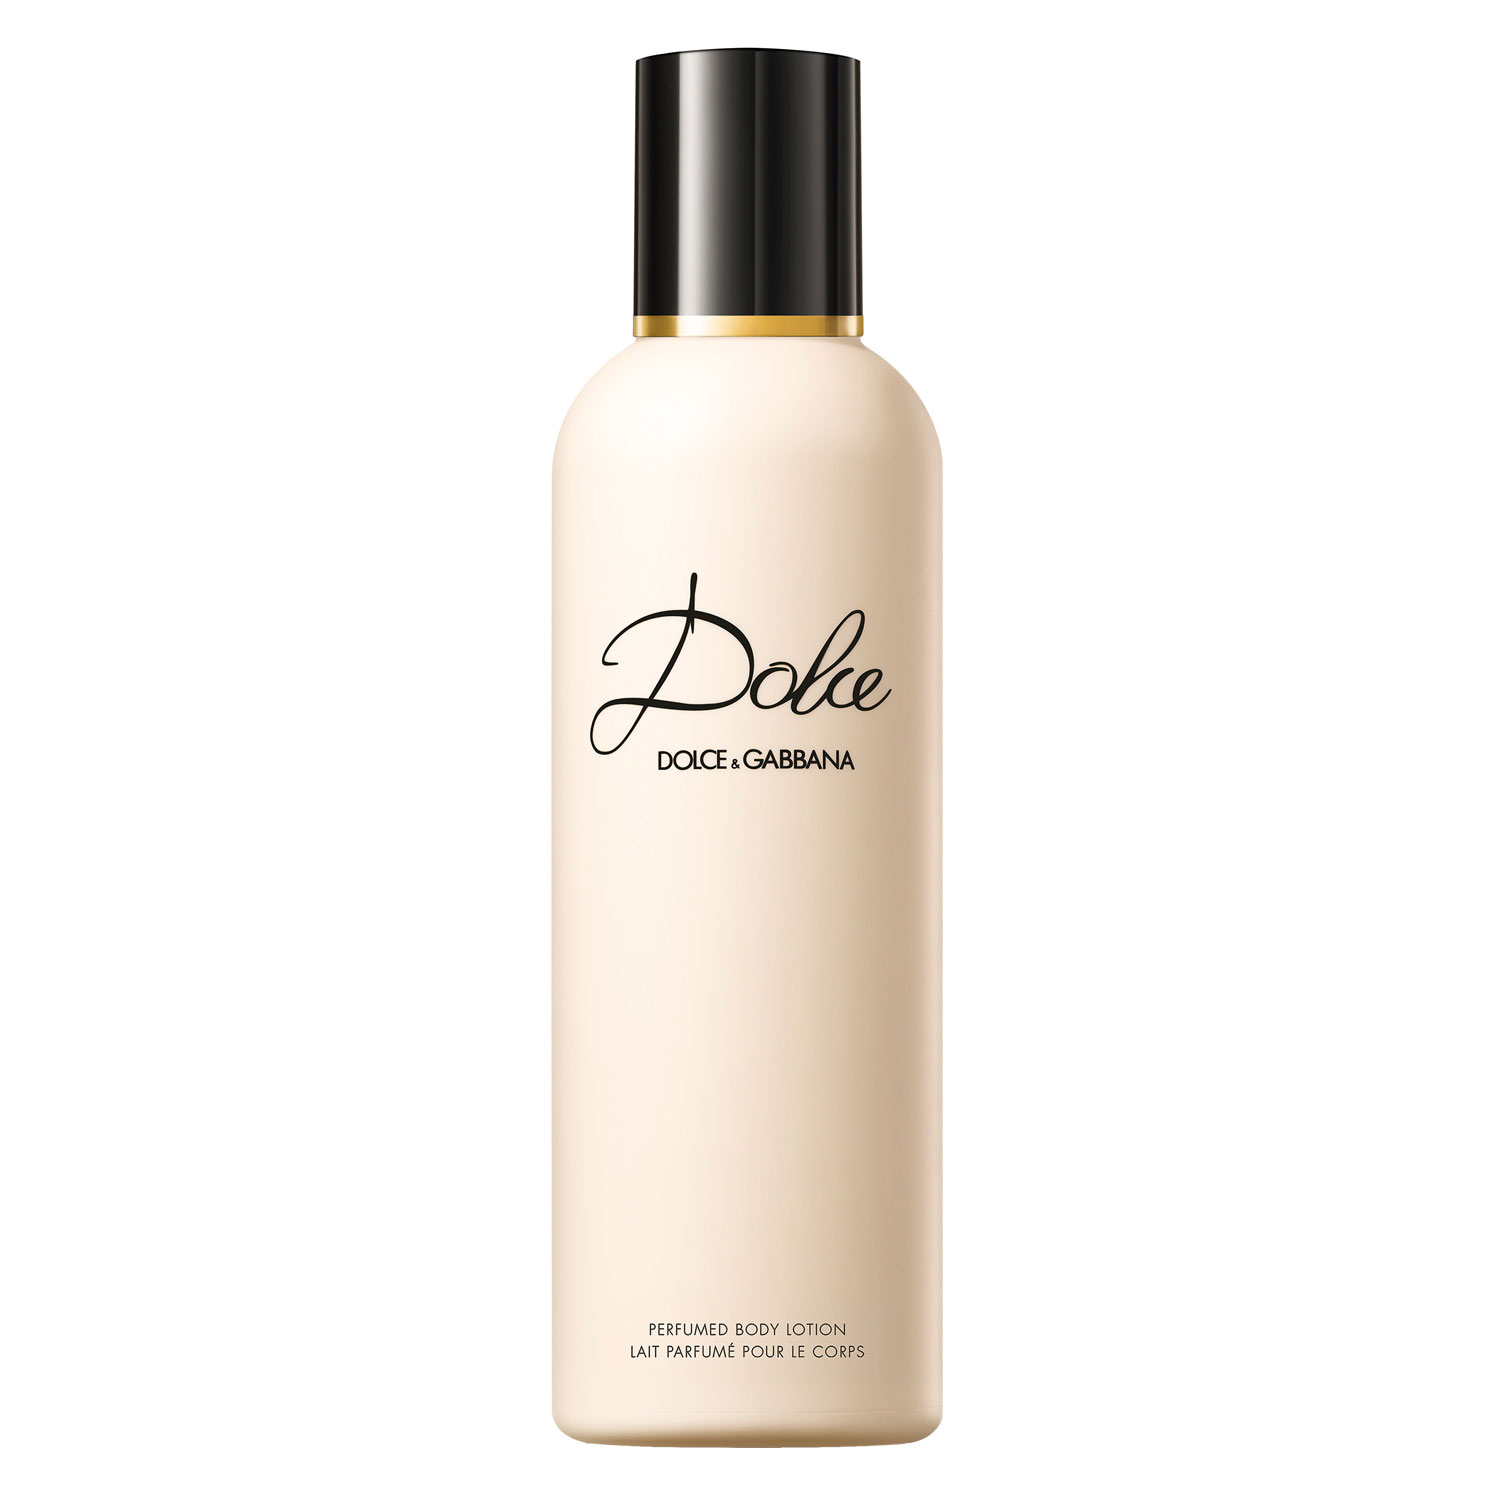 D&G Dolce - Body Lotion